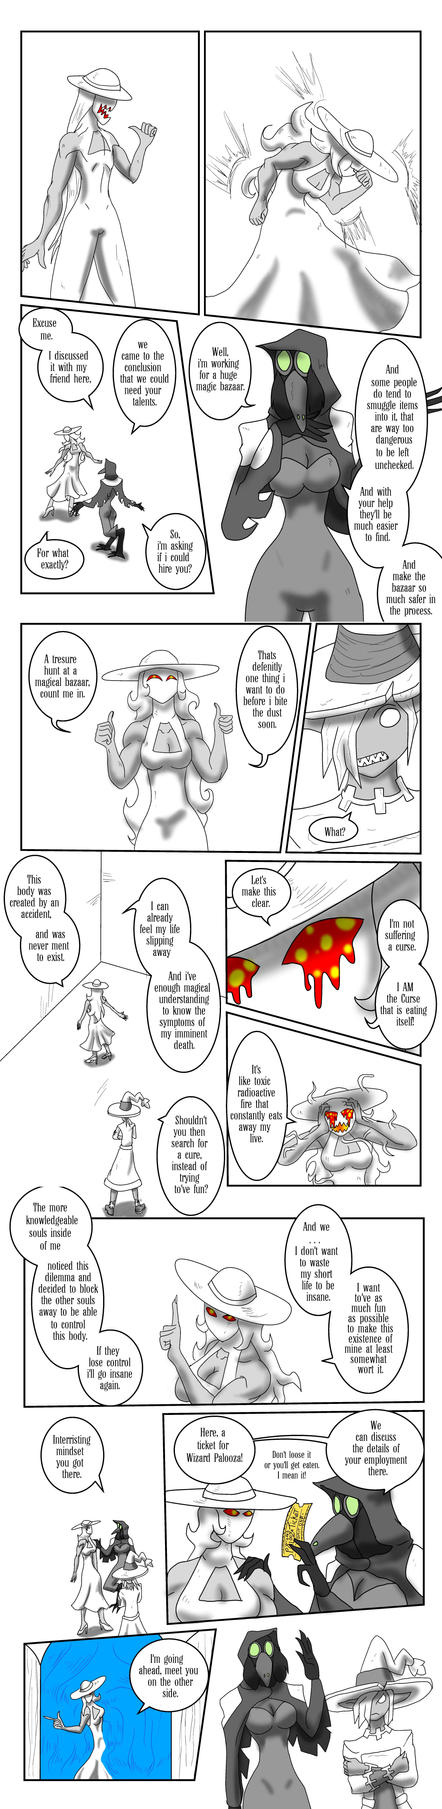 WizardPaloozaOCT - Eglantina - Audition - 05 by Shadow-wing2